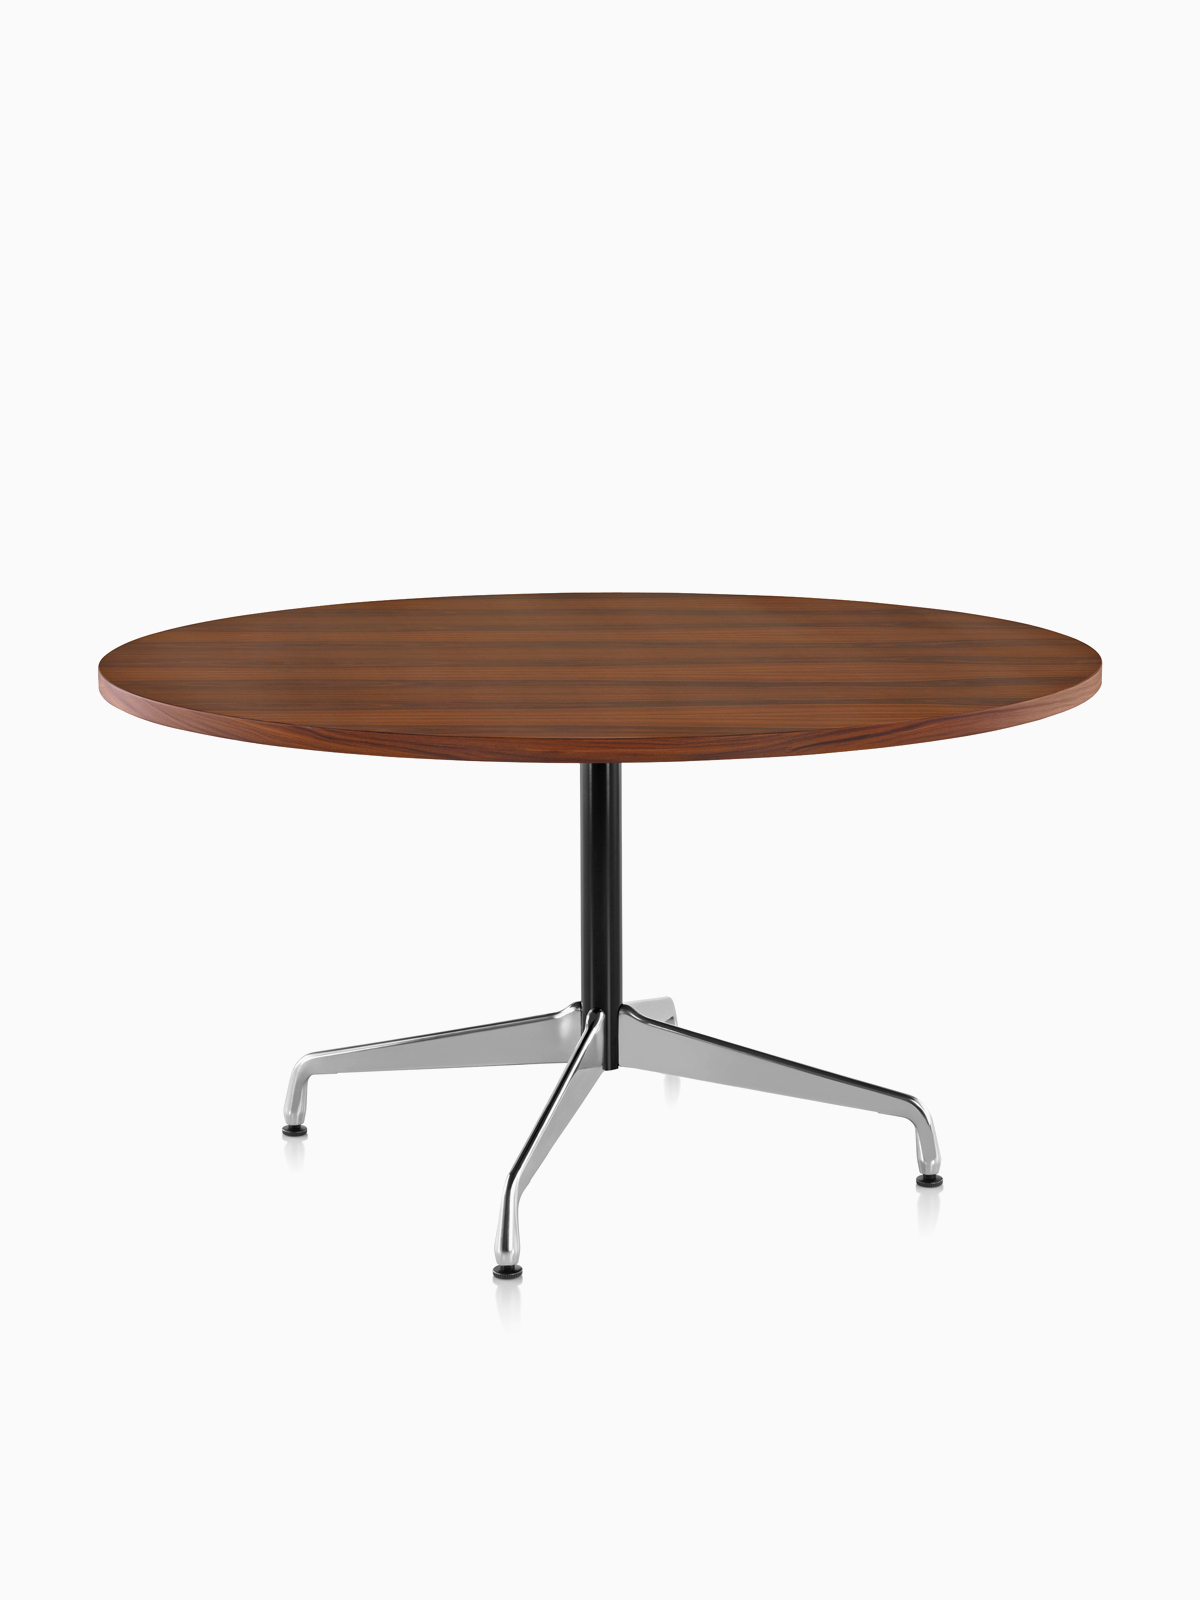 Most Current Eames Table – Conference Table – Herman Miller Within Eames Style Dining Tables With Wooden Legs (View 21 of 30)